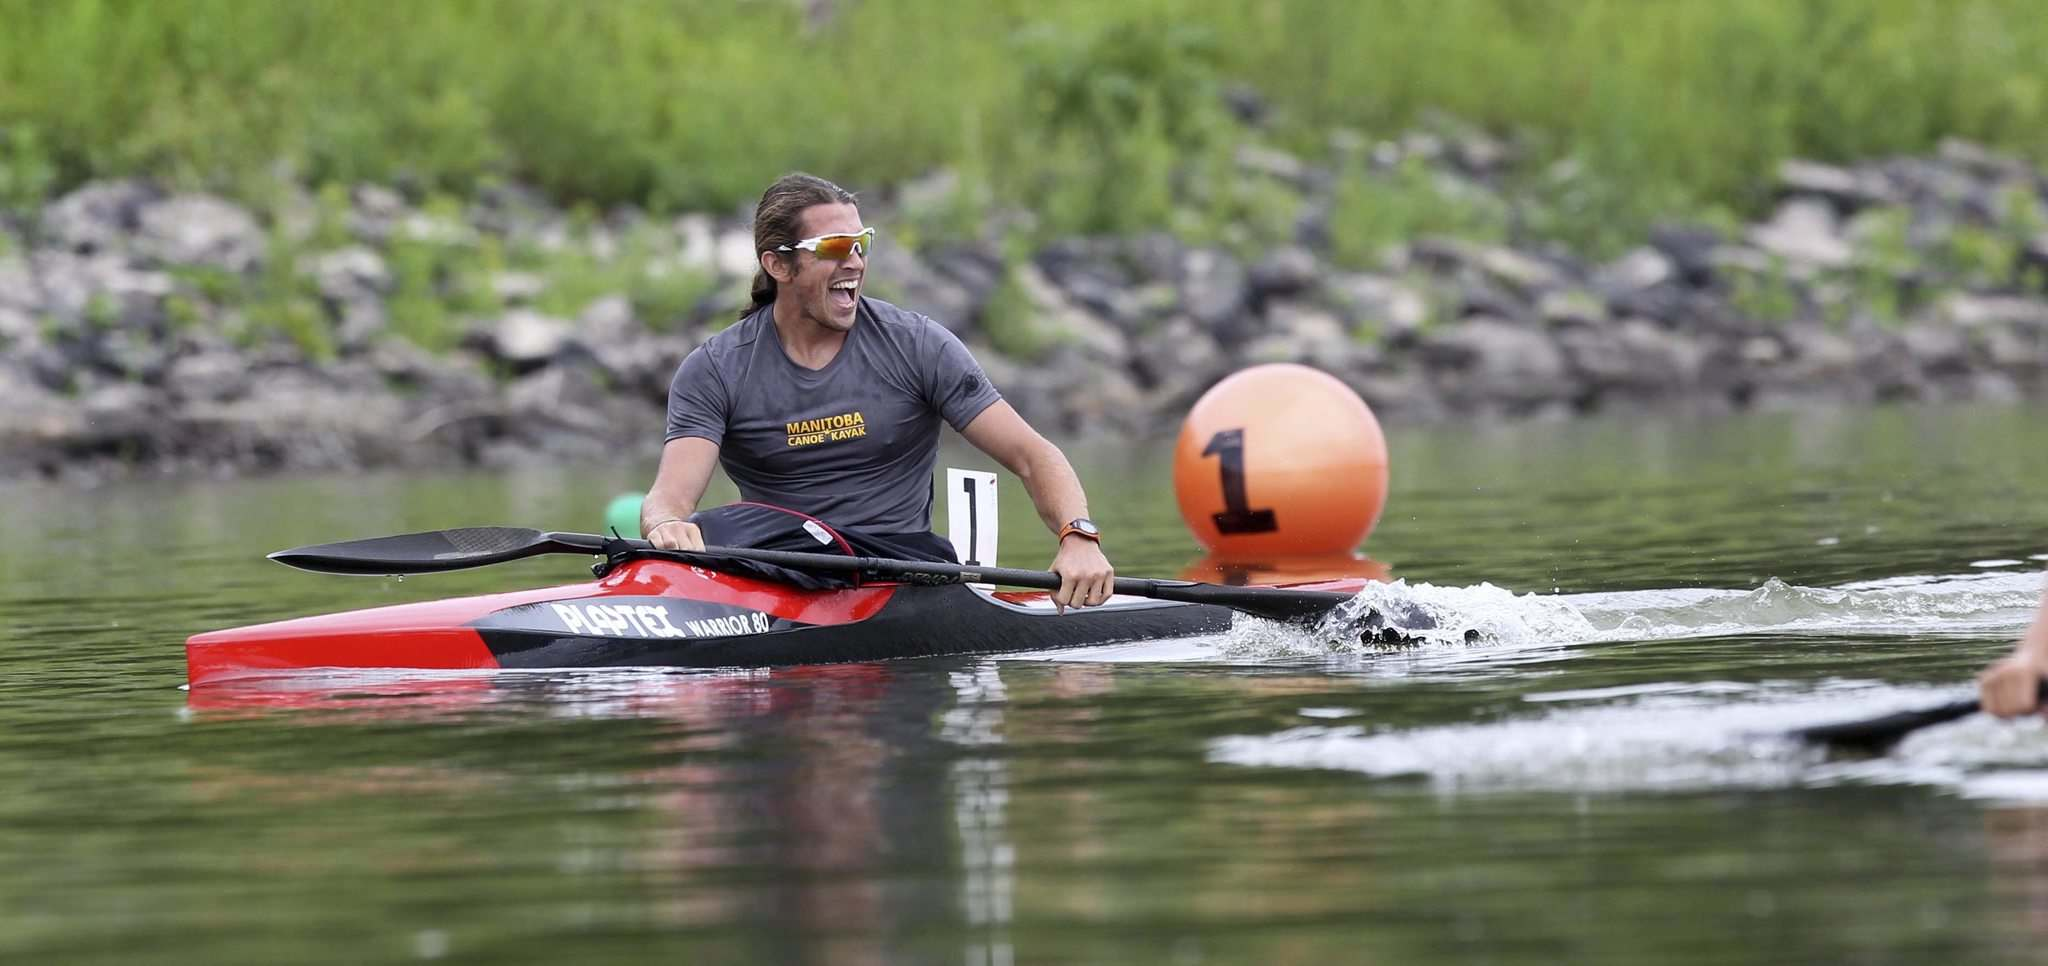 RUTH BONNEVILLE / WINNIPEG FREE PRESS</p><p>Team Manitoba's James Lavalee relaxes after placing fifth in the K1-1,000-metre kayak final at the Manitoba Canoe and Kayak Centre Tuesday.</p></p>